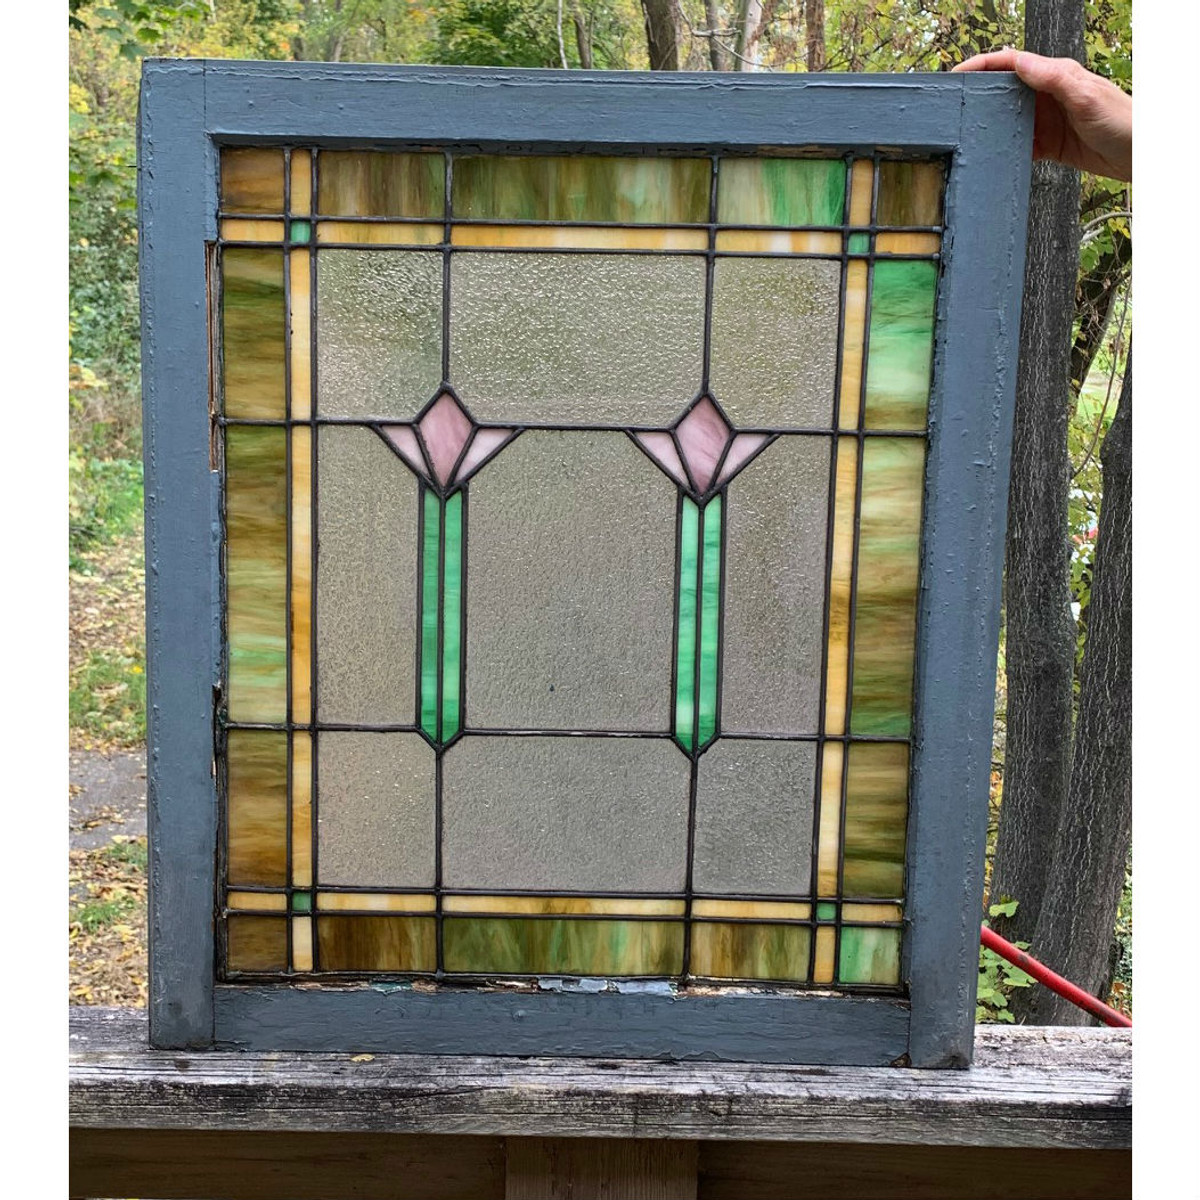 G19151 - Antique Stained Glass Window